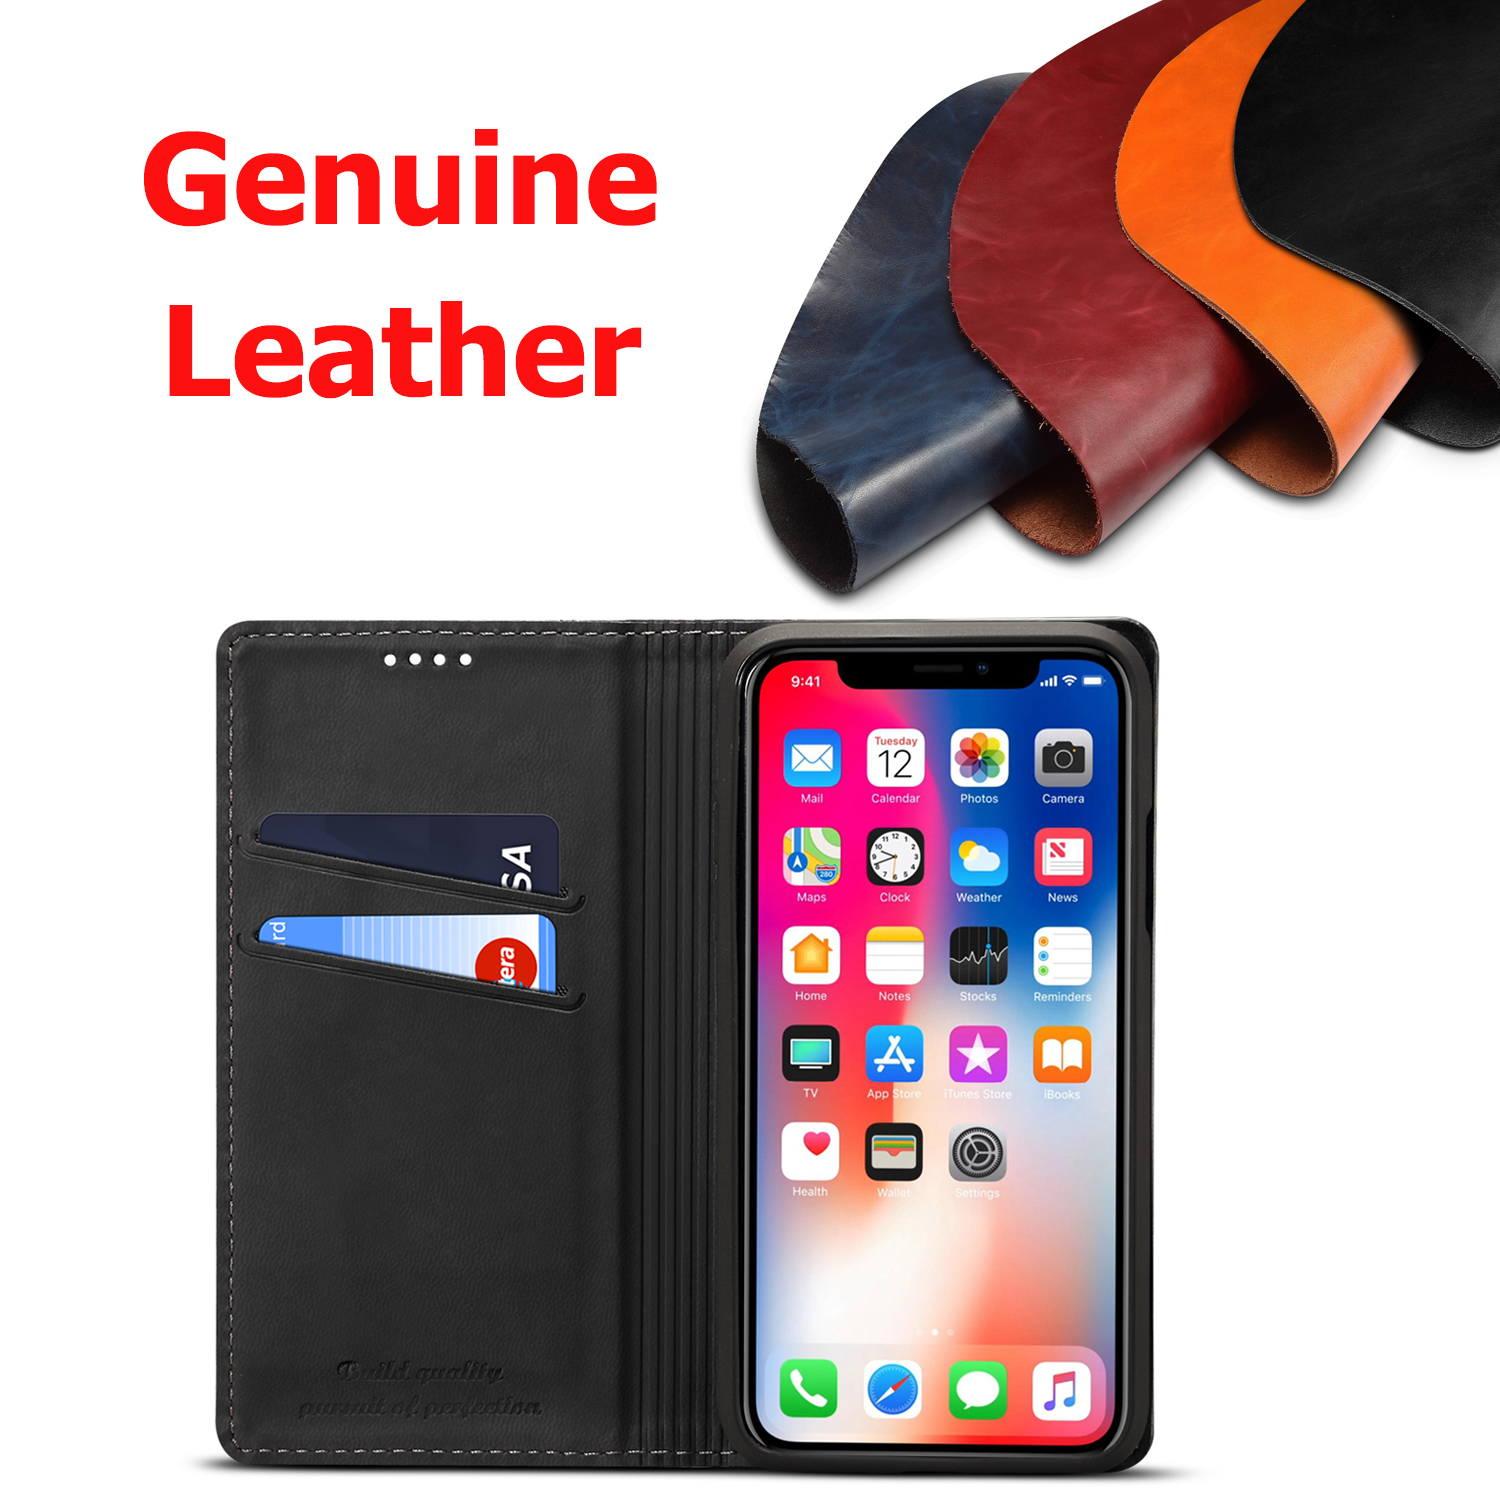 Phone Case For iPhone 7 8 Plus Genuine Leather Case iPhone XR XS Max Cover High Quality Luxury Flip Switch Phone Coque in Wallet Cases from Cellphones Telecommunications